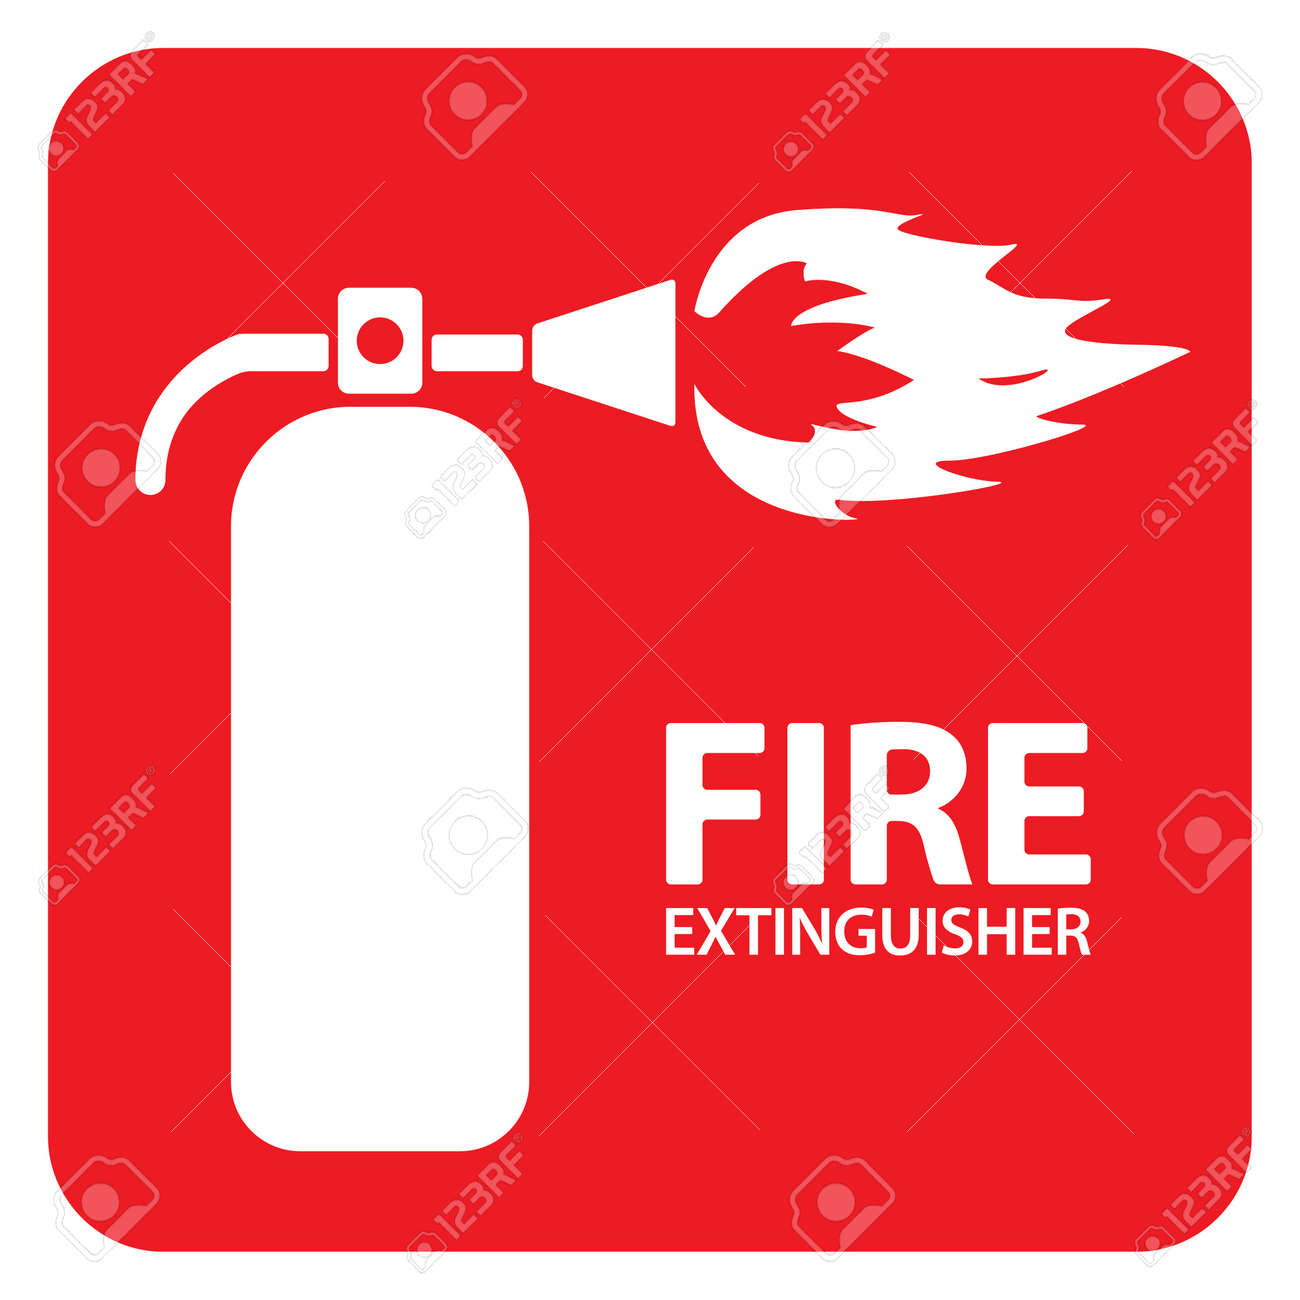 Drawing of a red fire extinguisher on the floor